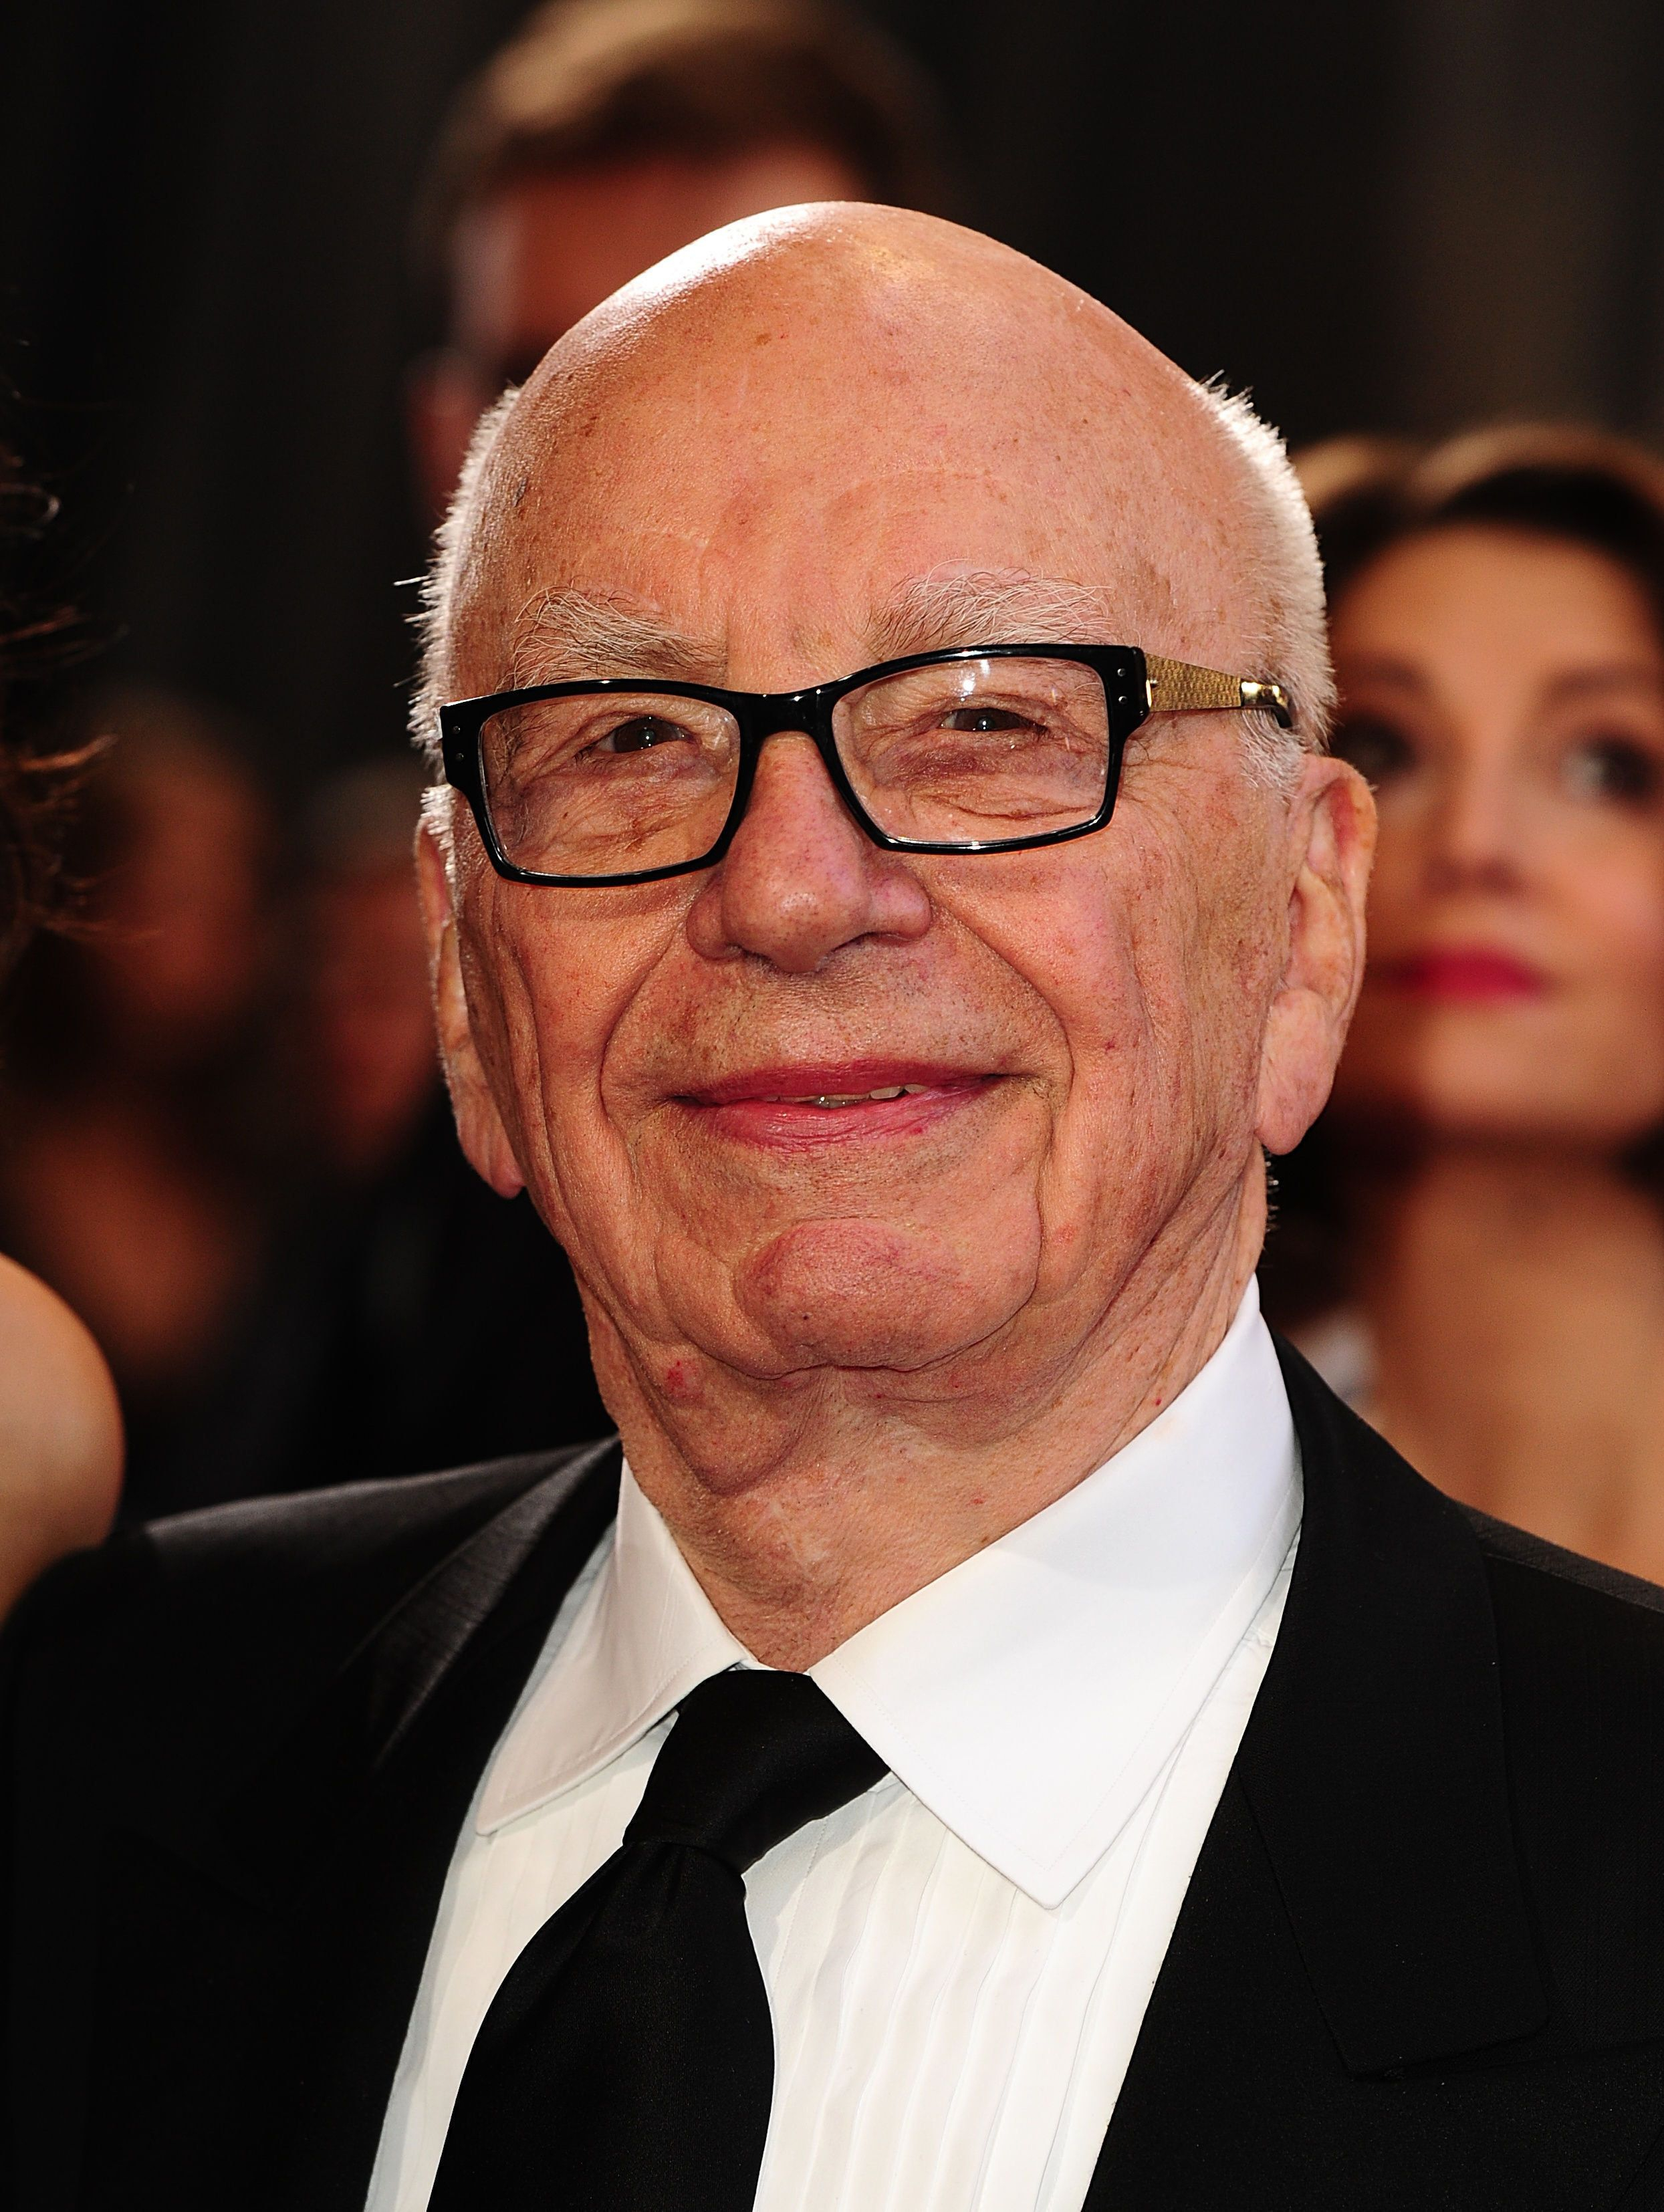 Rupert Murdoch-Owned Sky Makes Snap Decision To Take Fox News Off Air In